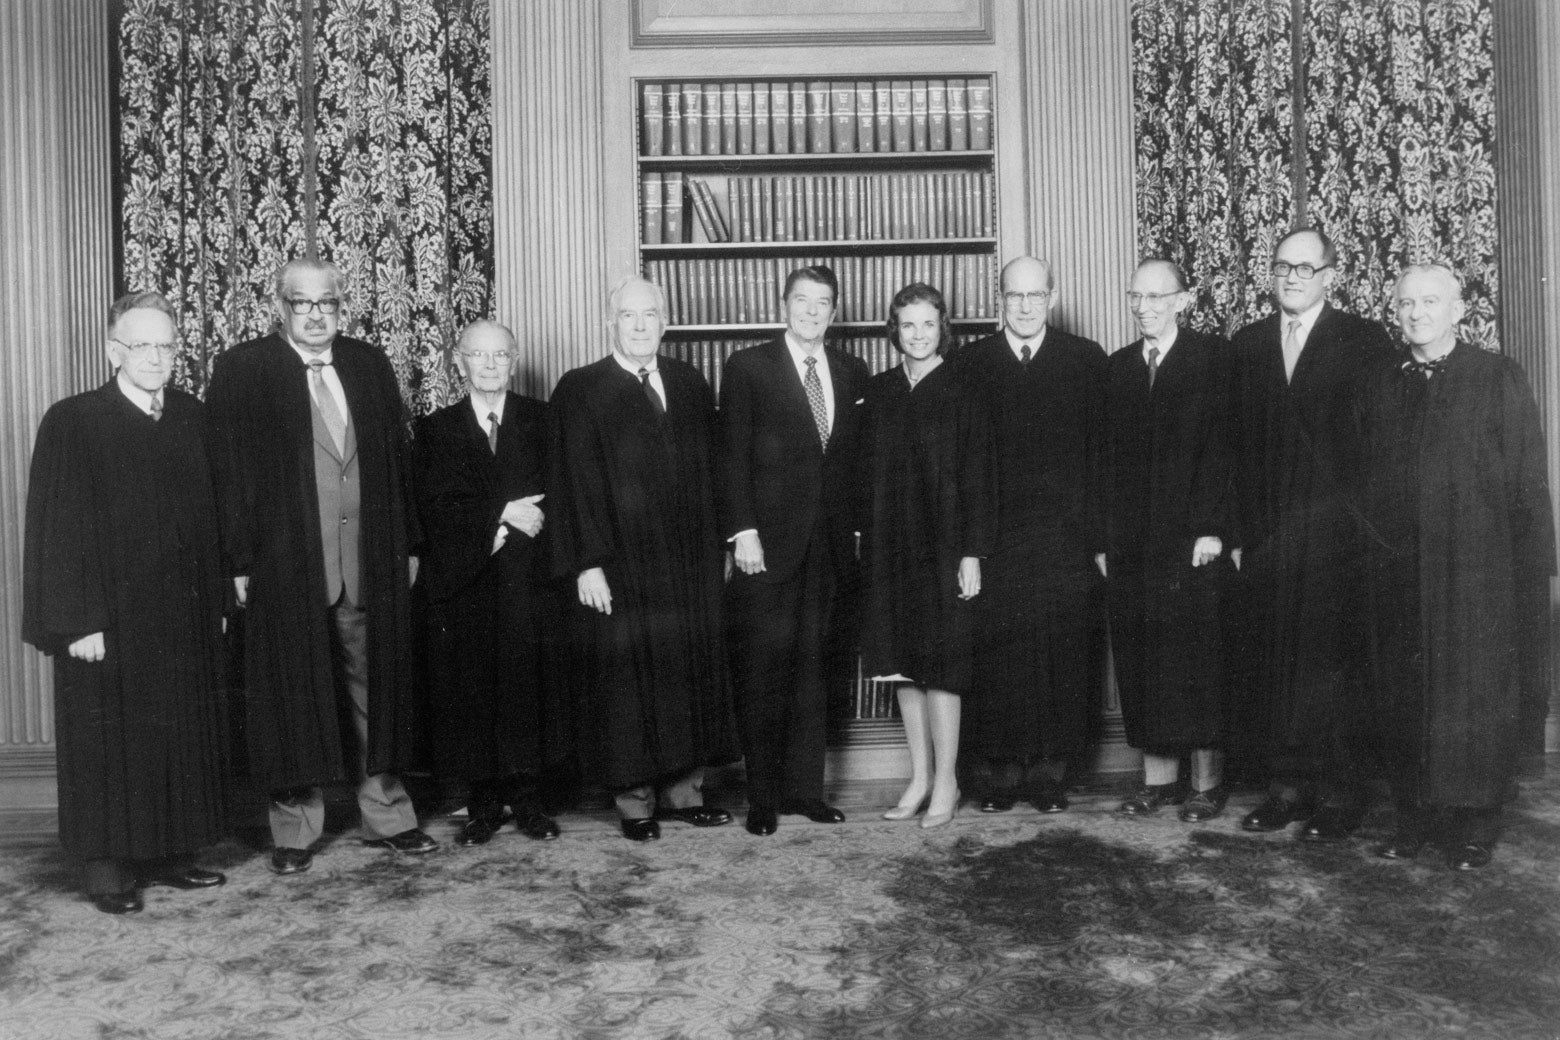 Justices Harry Blackmun, Thurgood Marshall, William Brennan, Warren Burger, President Ronald Reagan, Justice Sandra O'Connor, Justices Byron White, Lewis Powell, William Rehnquist and John Paul Stevens.